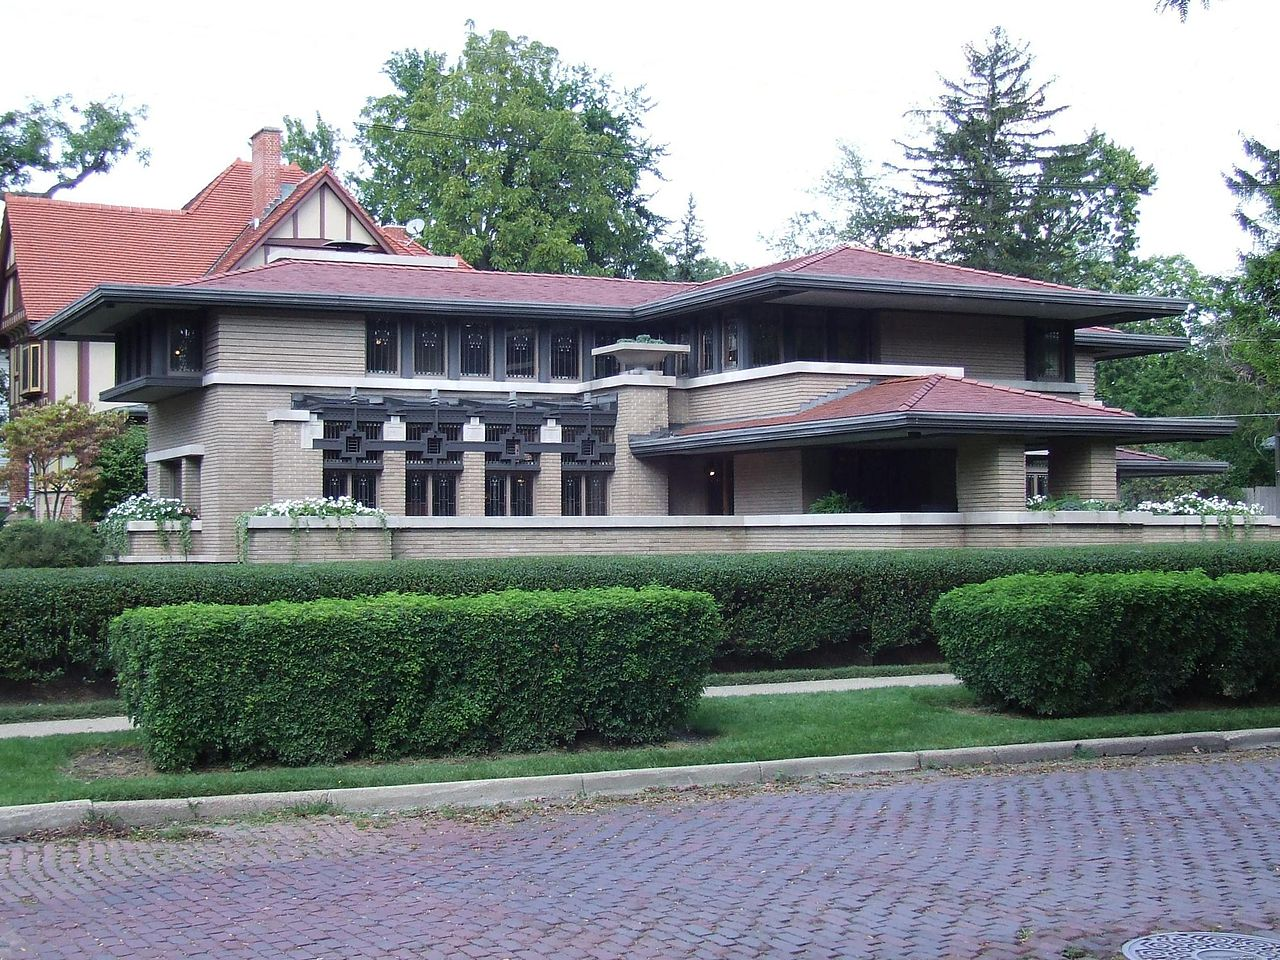 Best Tourist Attraction in Grand Rapids-Meyer May House